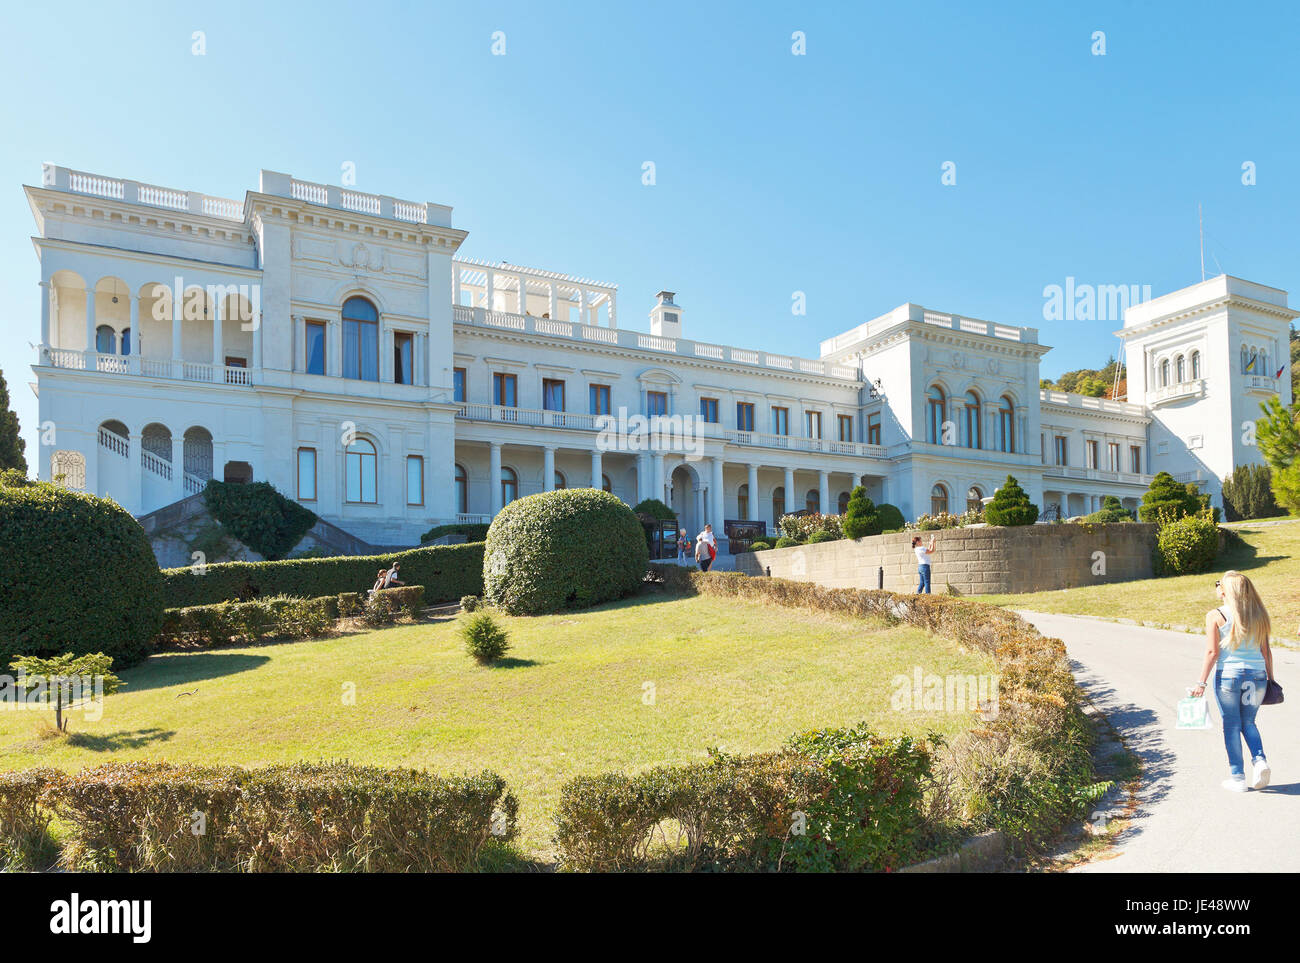 YALTA, RUSSIA - SEPTEMBER 30, 2014: people walking in park of Grand Livadia Palace in Crimea. Livadia estate was - Stock Image